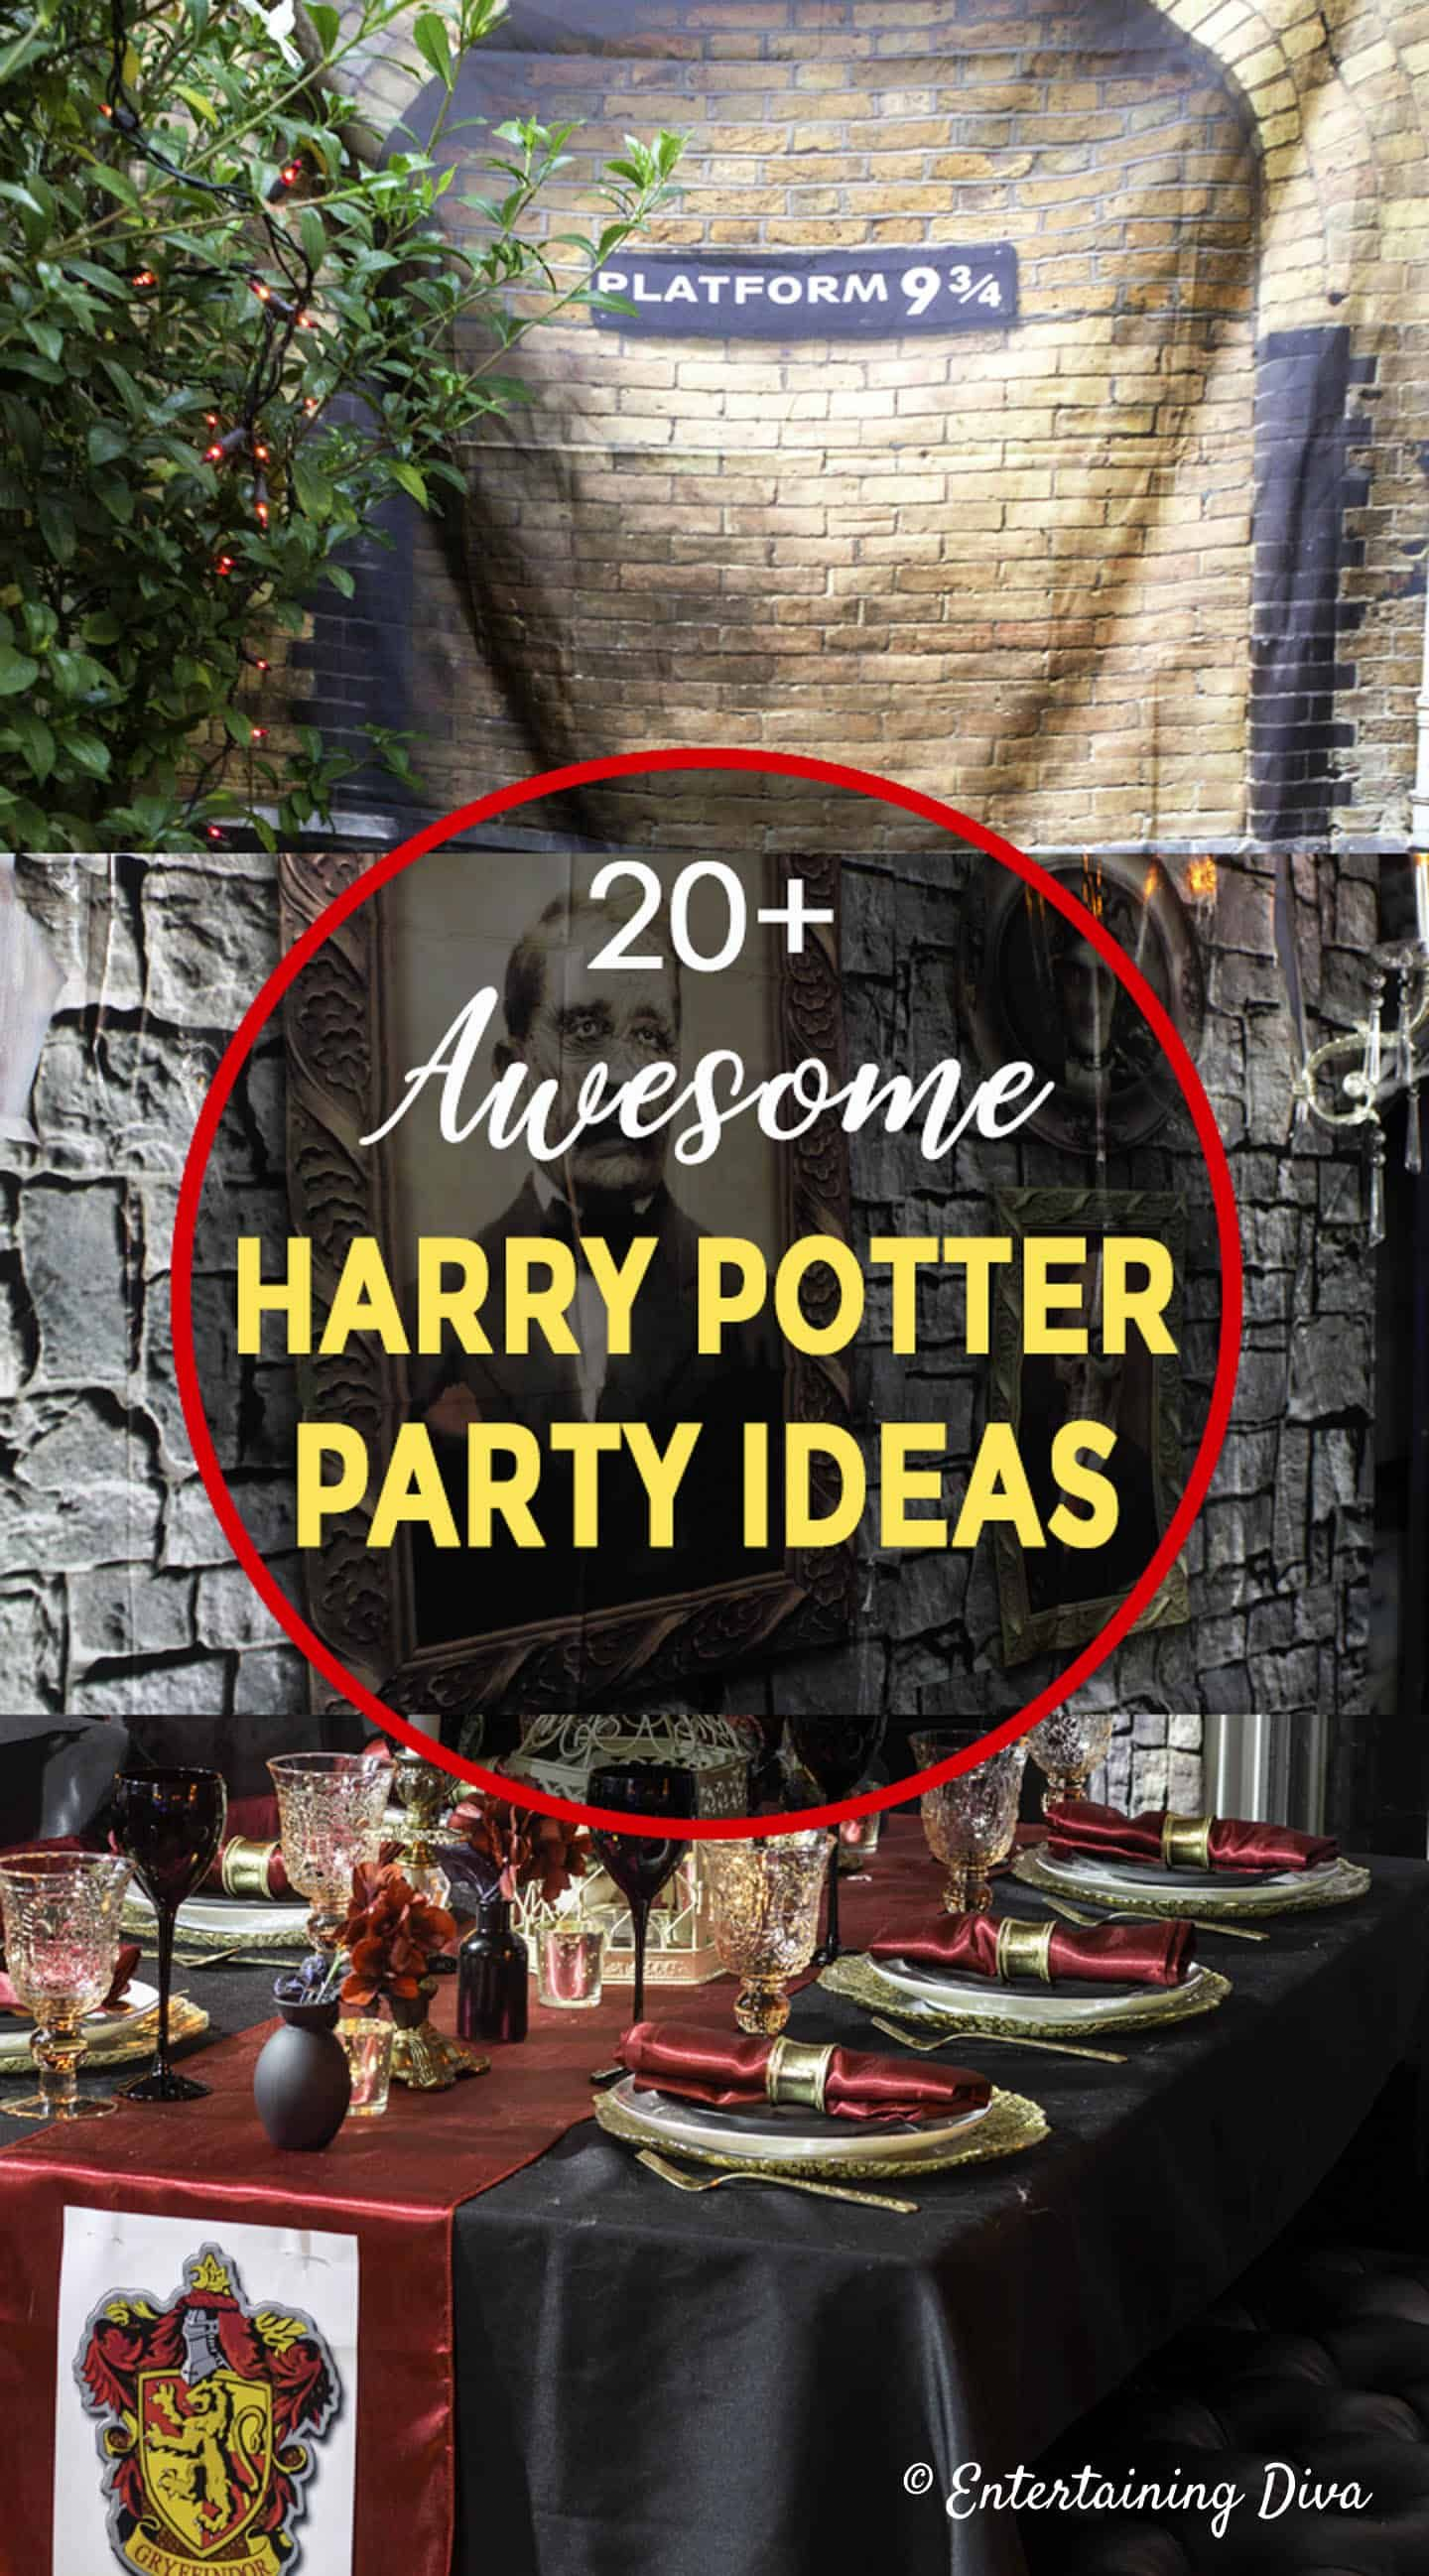 20 Awesome Harry Potter Party Ideas Entertaining Diva From House To Home Harry Potter Party Decorations Harry Potter Party Harry Potter Halloween Party